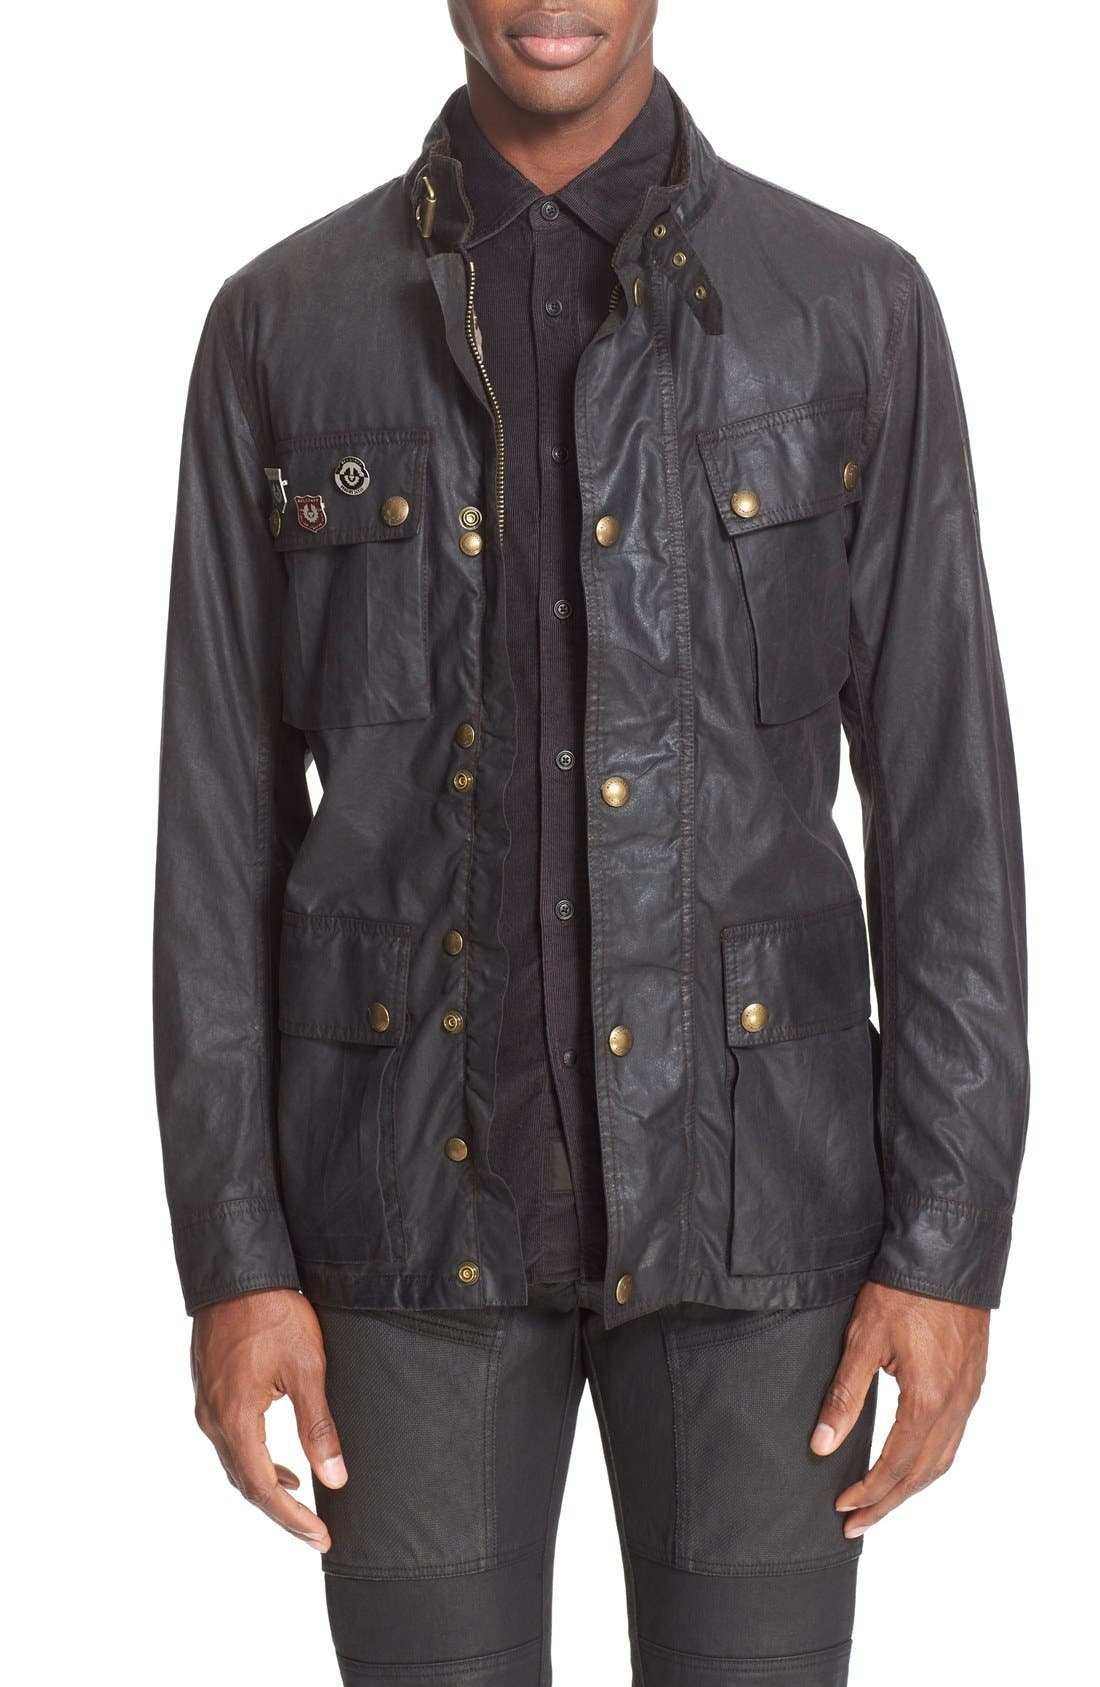 BELSTAFF 'Trialmaster Vintage' Waxed Cotton Jacket